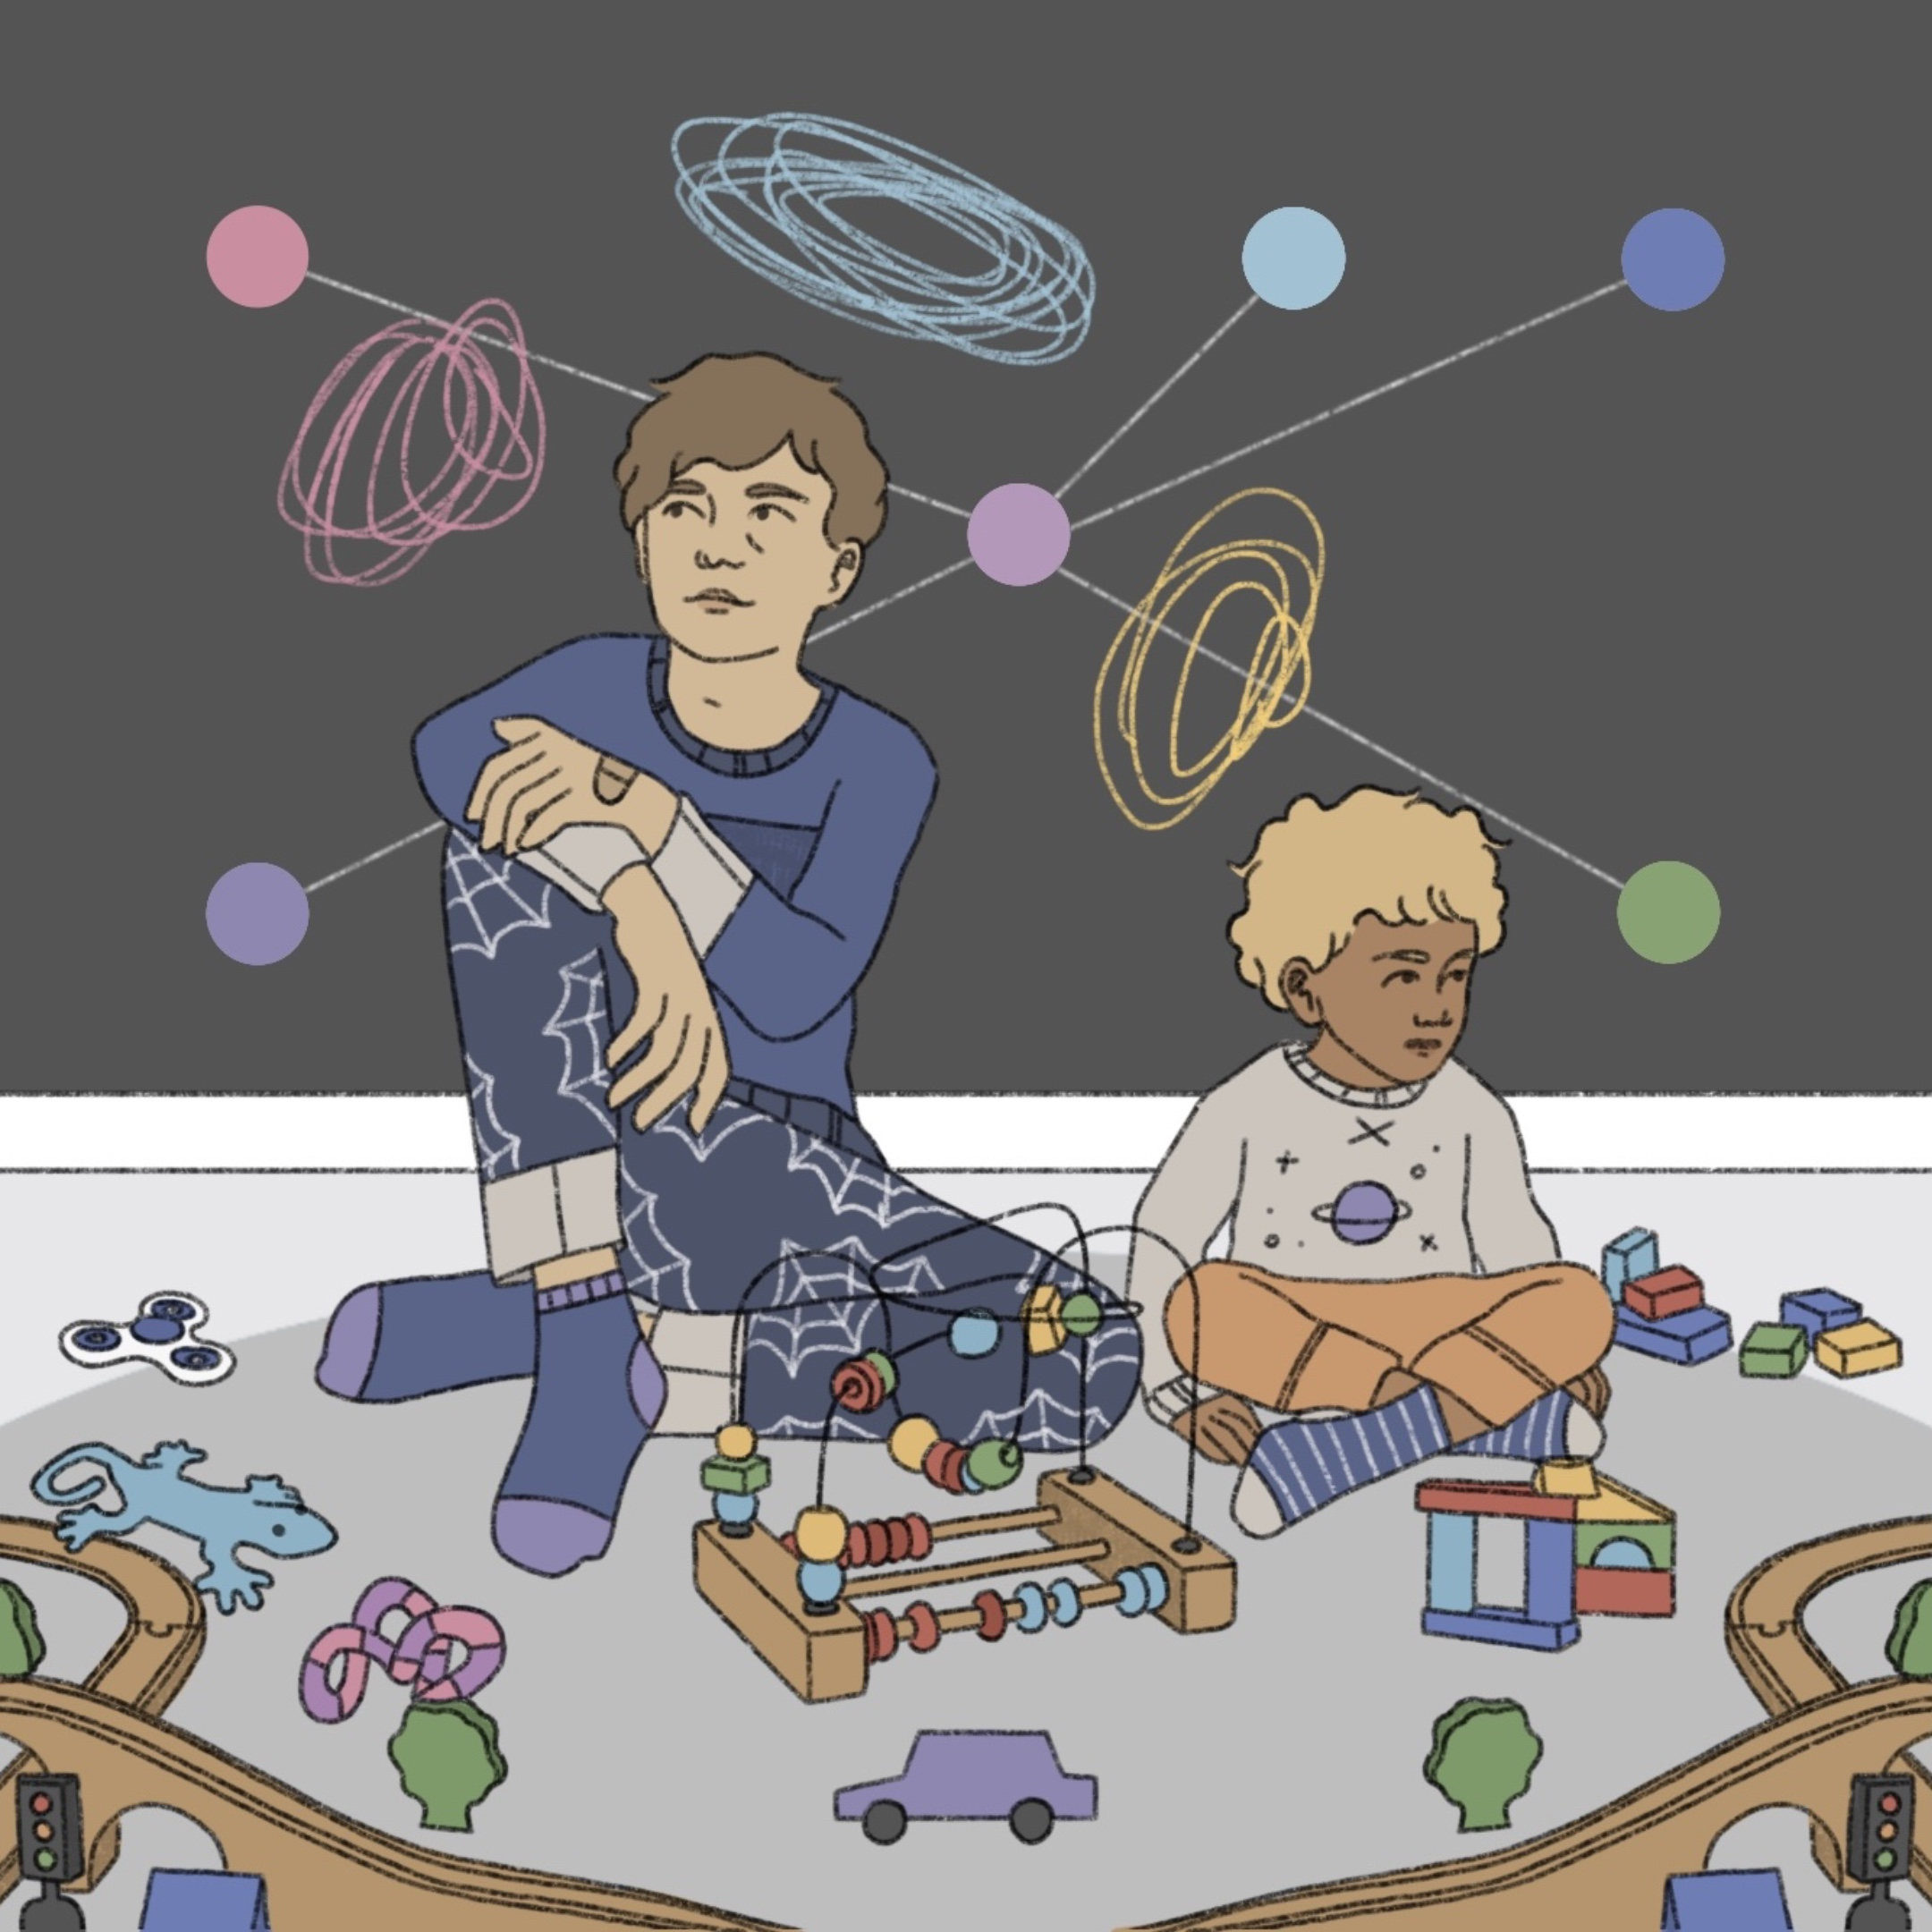 An illustration of two children sitting in a playroom surrounded by various toys and shapes.